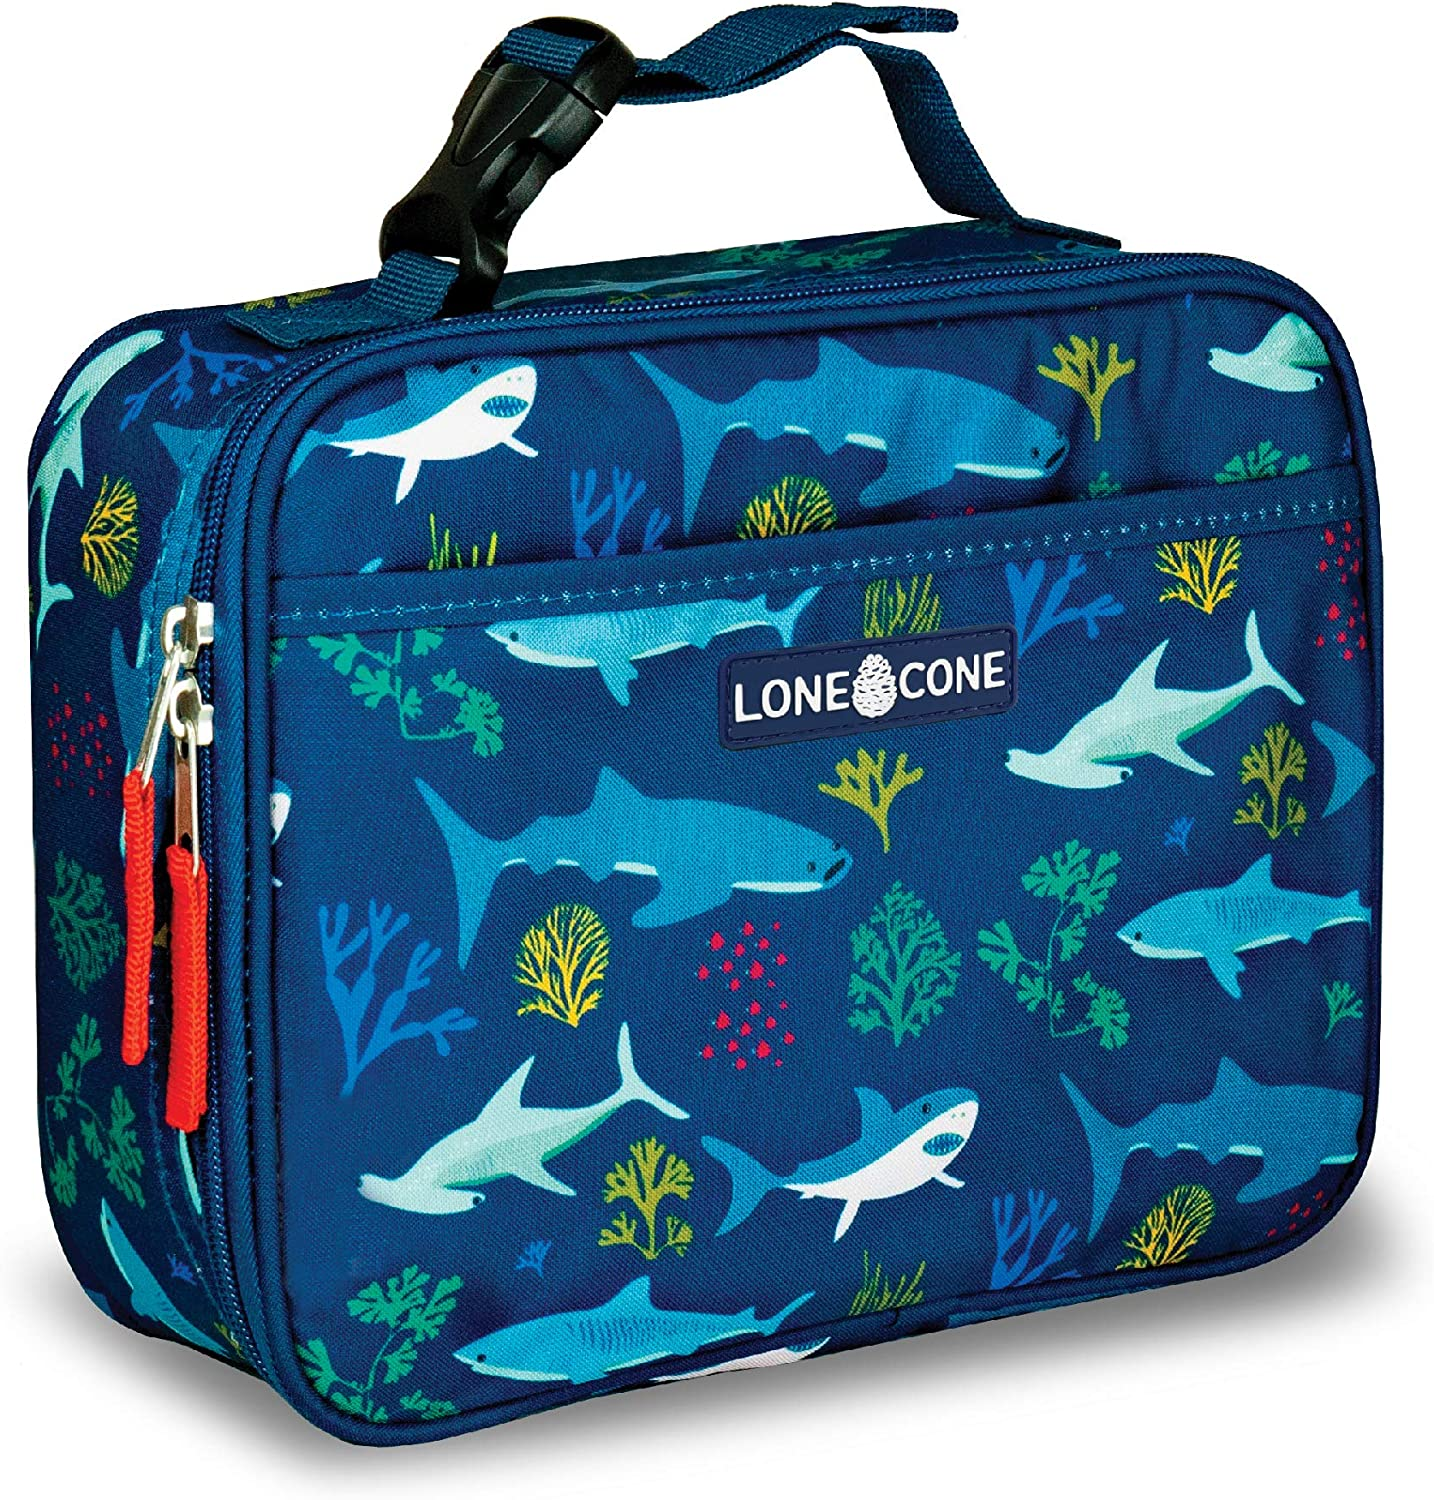 LONECONE Kids' Insulated Fabric Lunch Box - Fun Patterns for Boys and Girls, Shark Attack, Standard